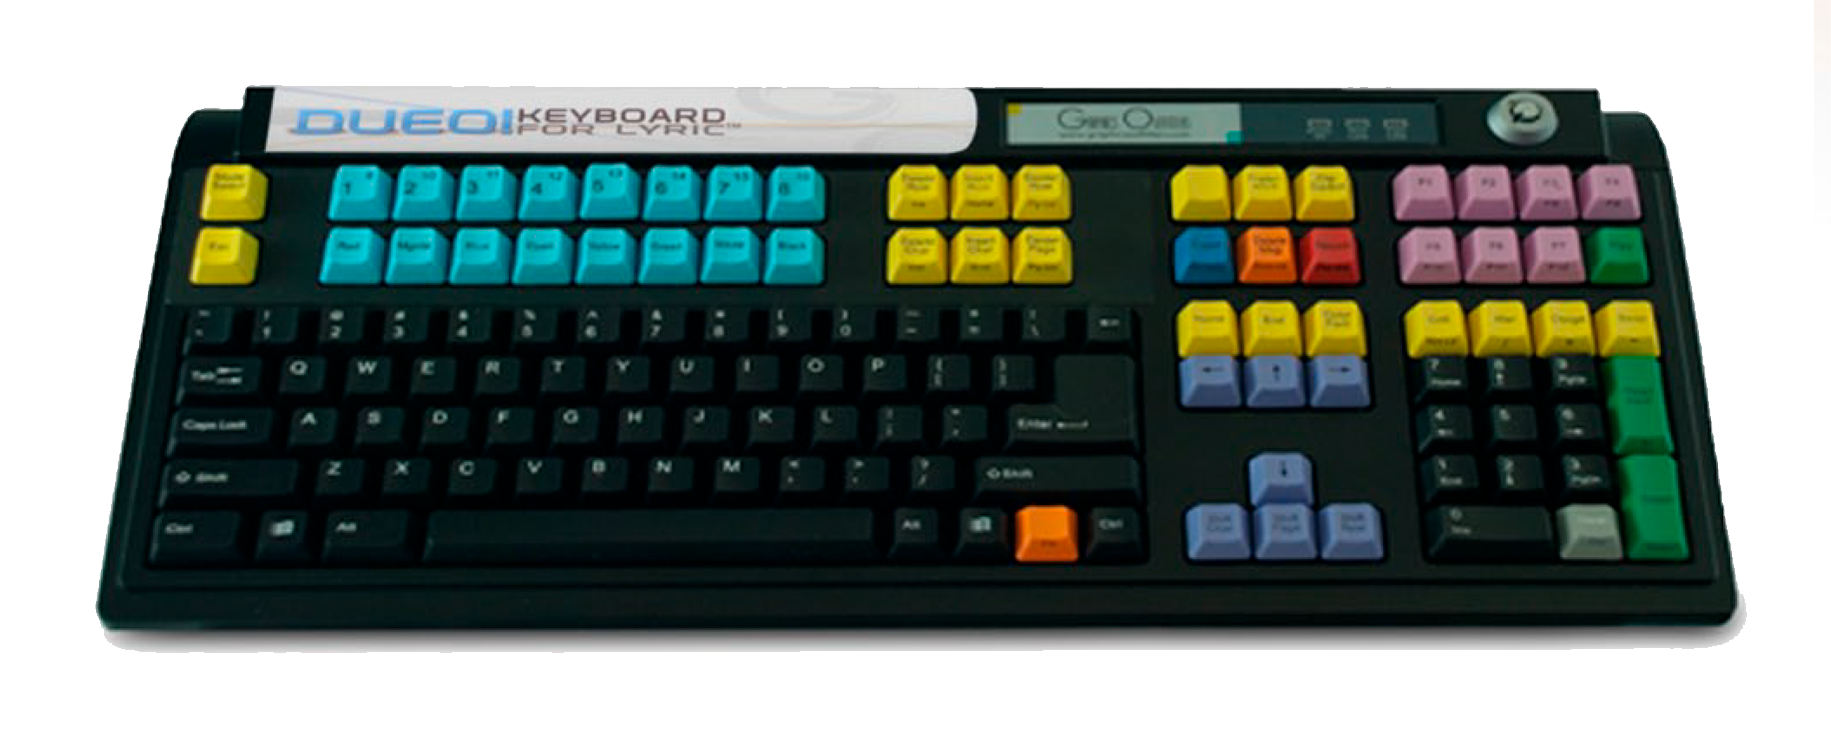 DUEO! KEYBOARD FOR LYRIC™